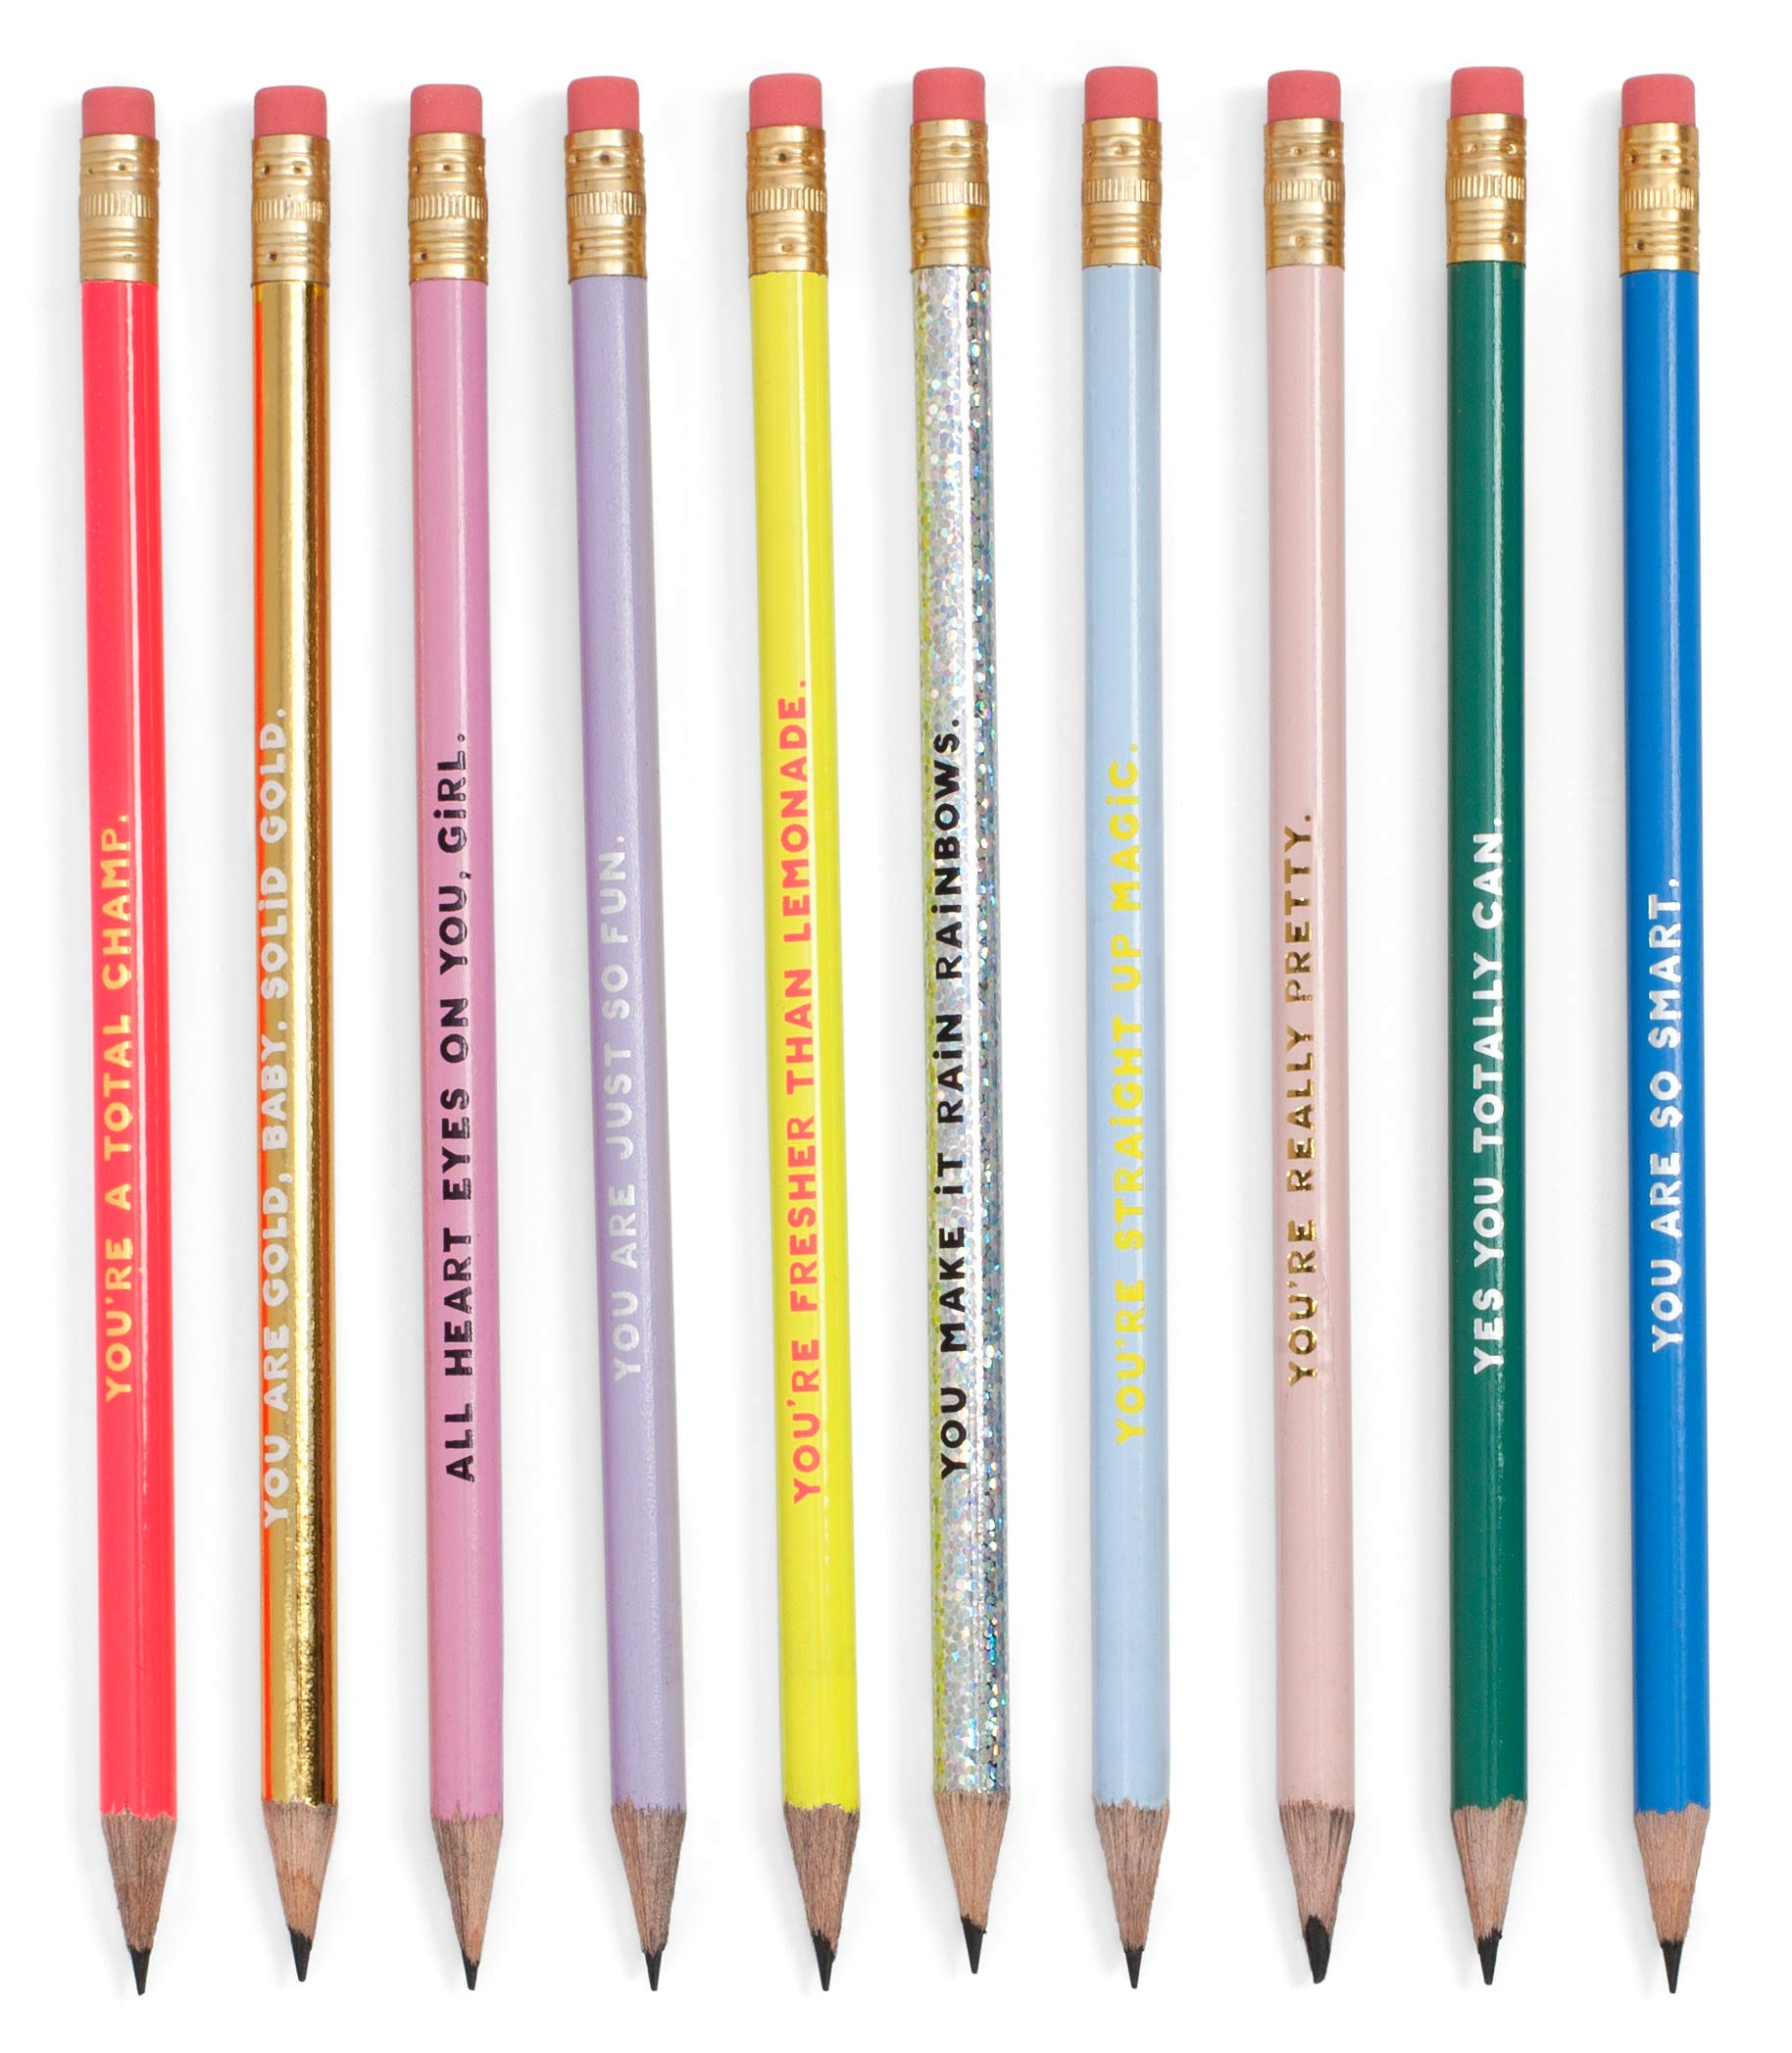 ban.do Women's Write On Graphite Pencil Set of 10, Compliments by ban.do